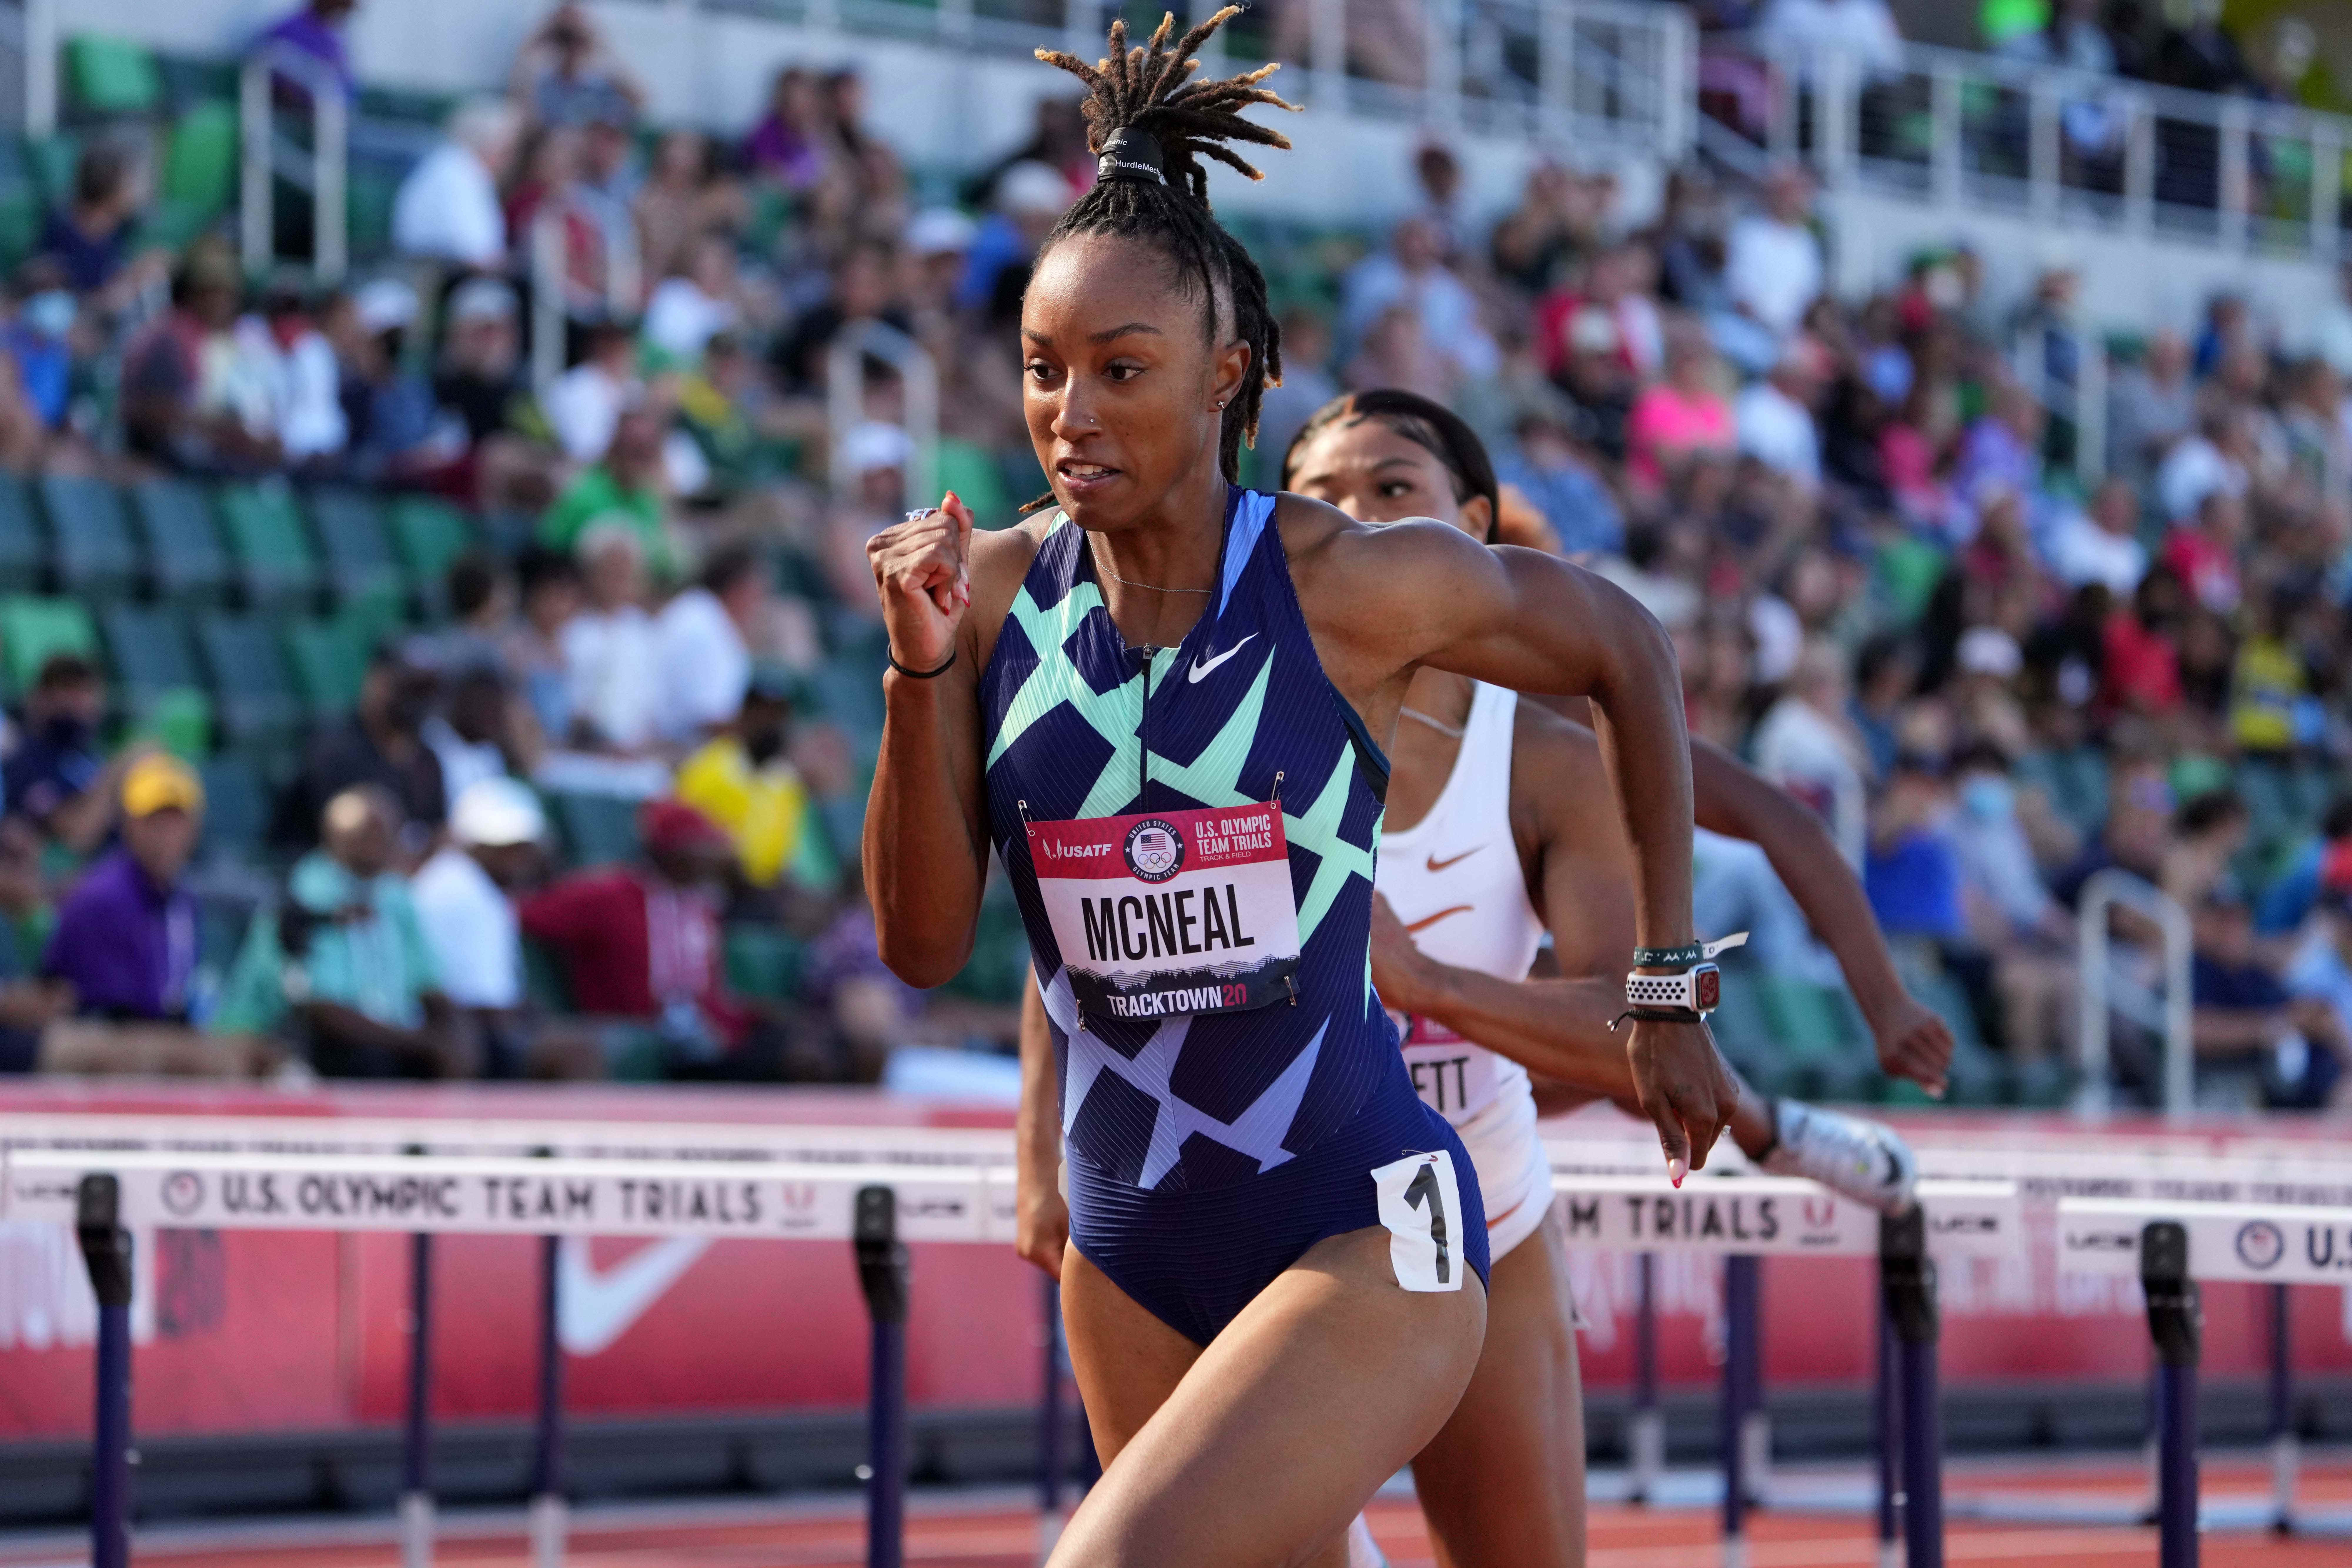 Brianna McNeal finishes second in 100-meter hurdles. Will she be cleared to race in Olympics?